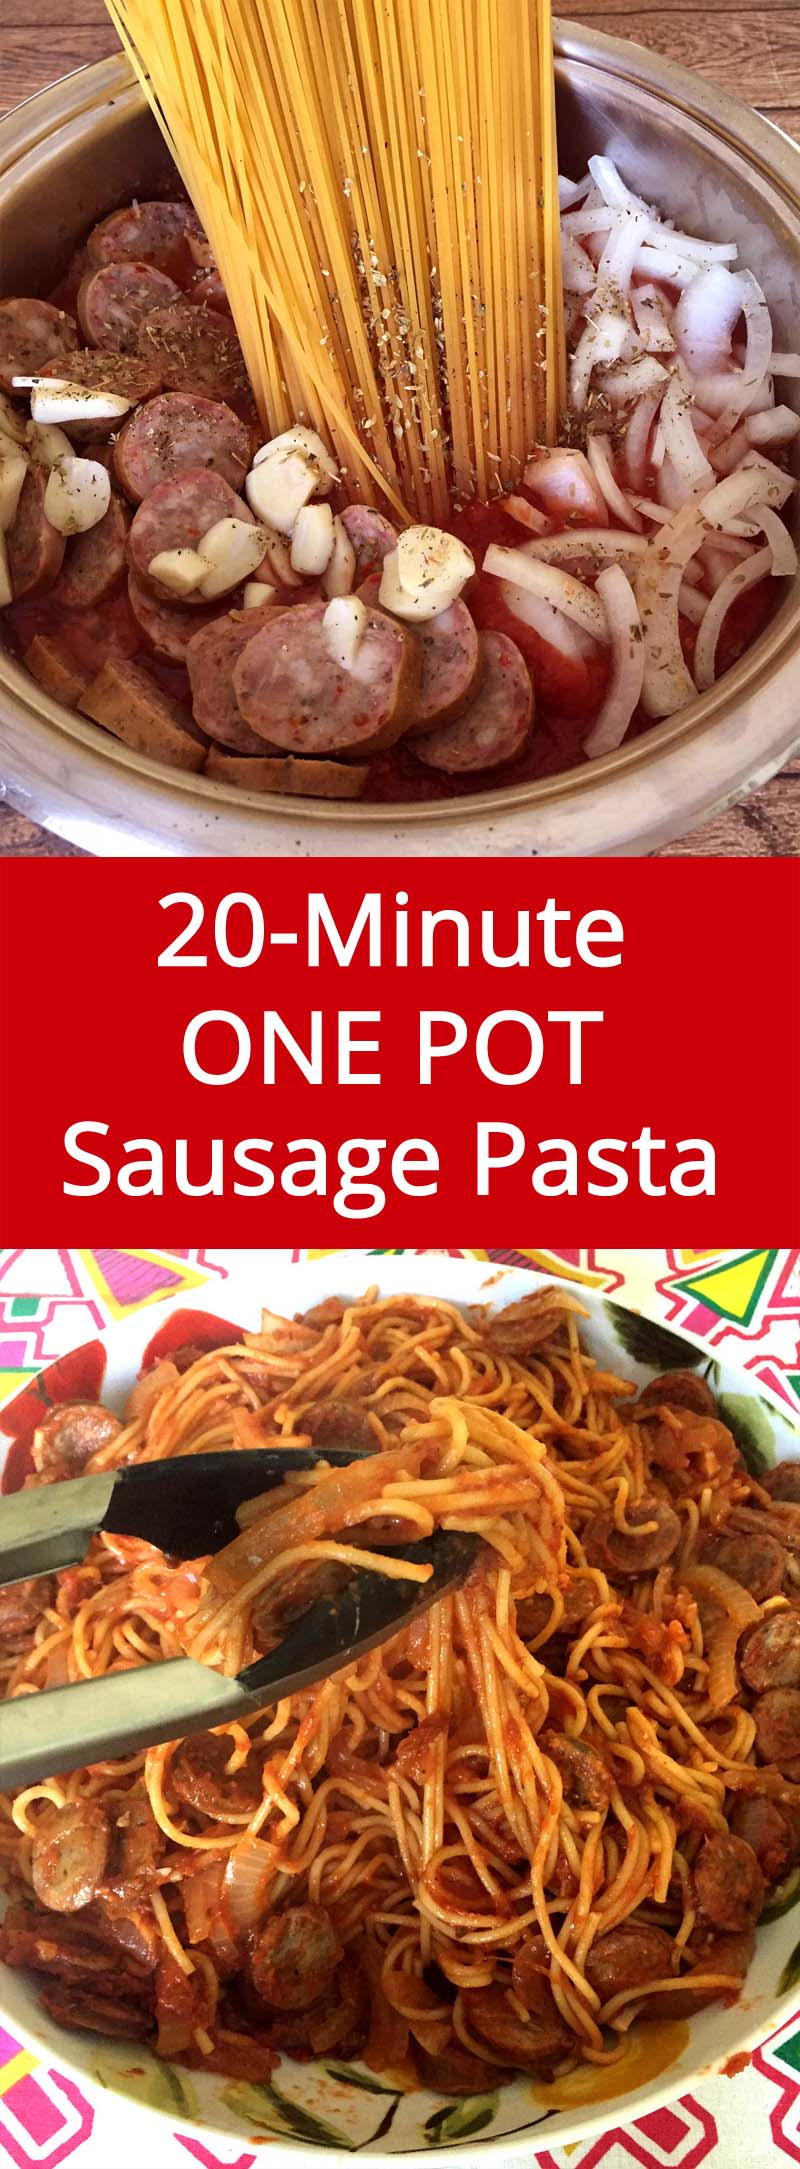 Easy 20-Minute One Pot Sausage Recipe - ready in 20 minutes from start to finish, and you'll have only one pot to clean – genius!